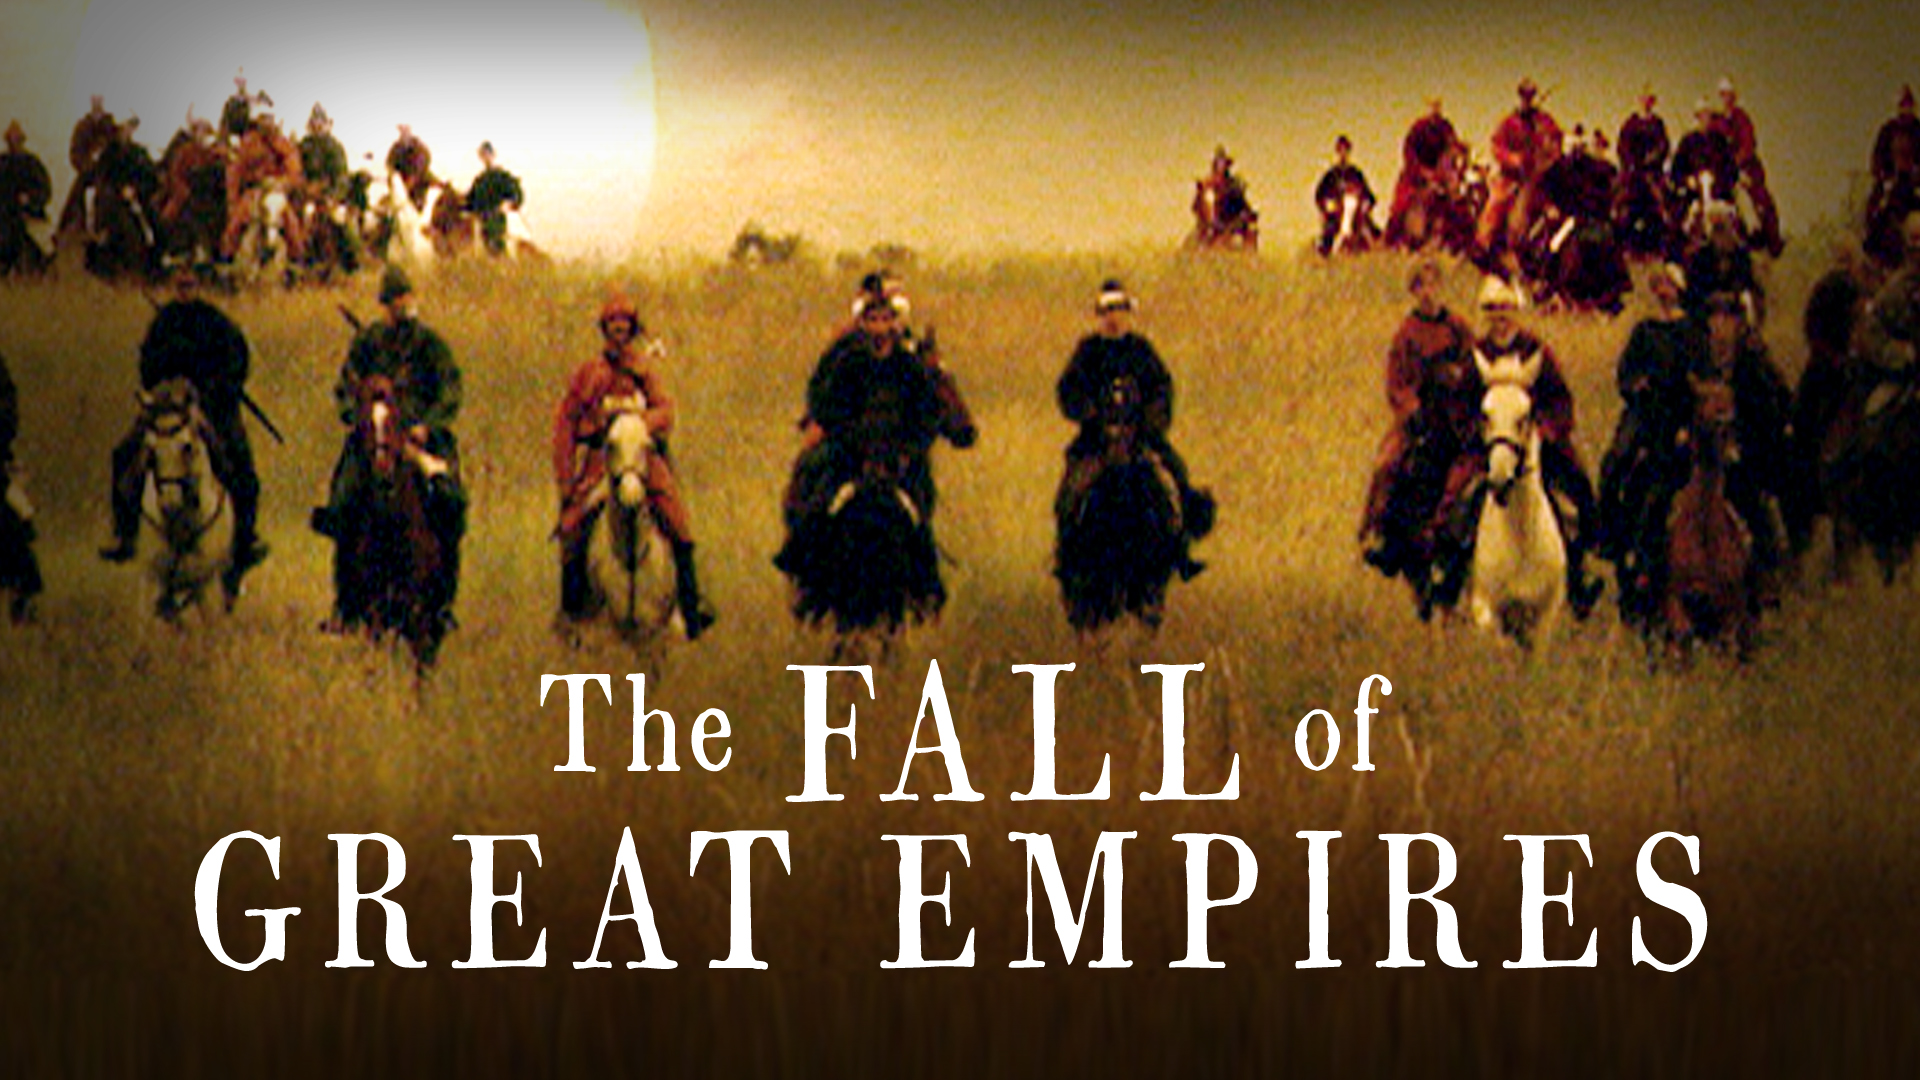 The Fall of Great Empires